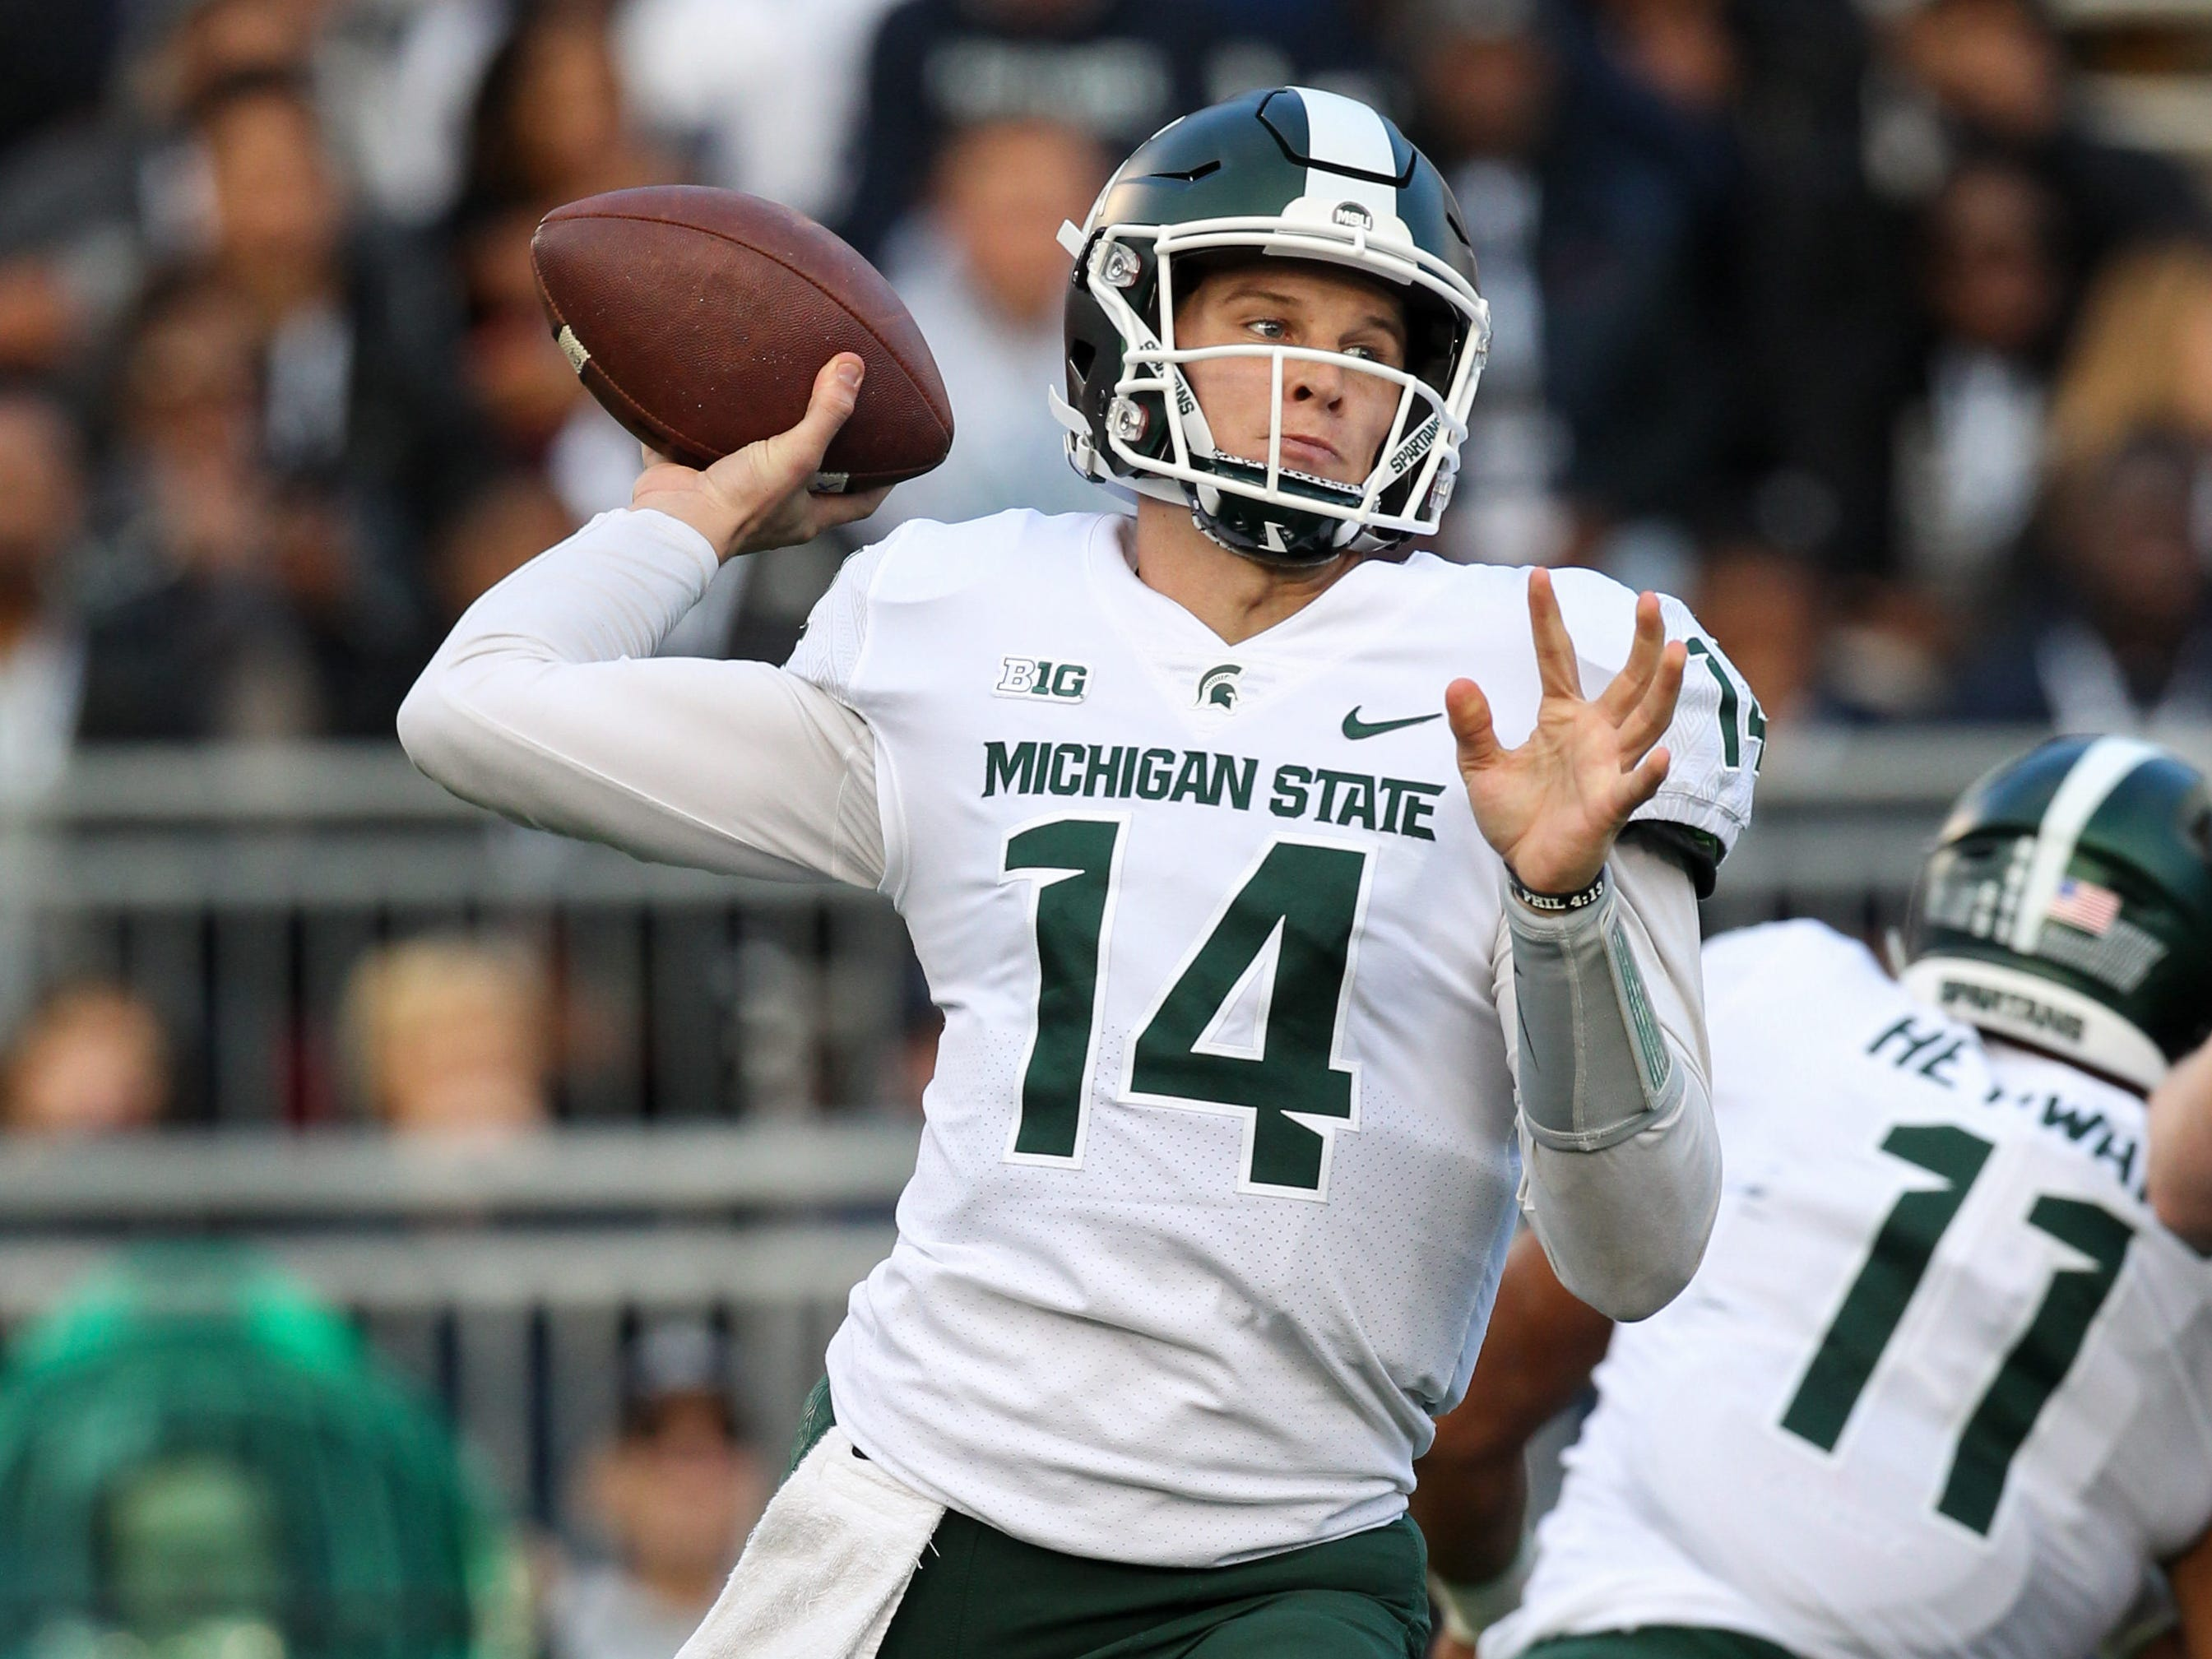 Michigan State Spartans quarterback Brian Lewerke (14) throws a pass during the first quarter against the Penn State Nittany Lions at Beaver Stadium.